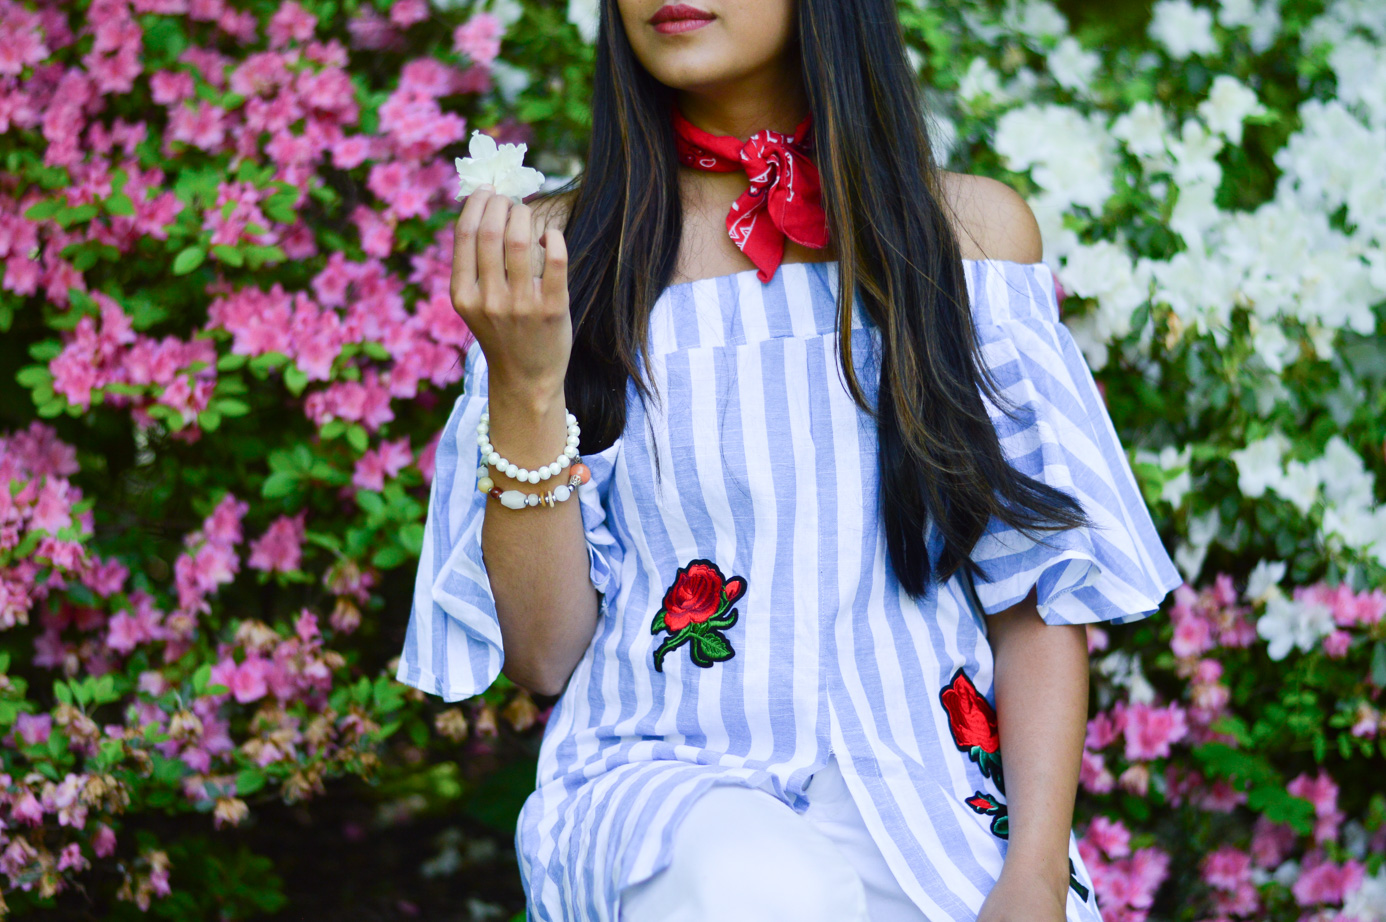 central-park-summer-style-what-wore-travel-outfit-off-the-shoulder-stripes-embroidered-blogger-outfit 9